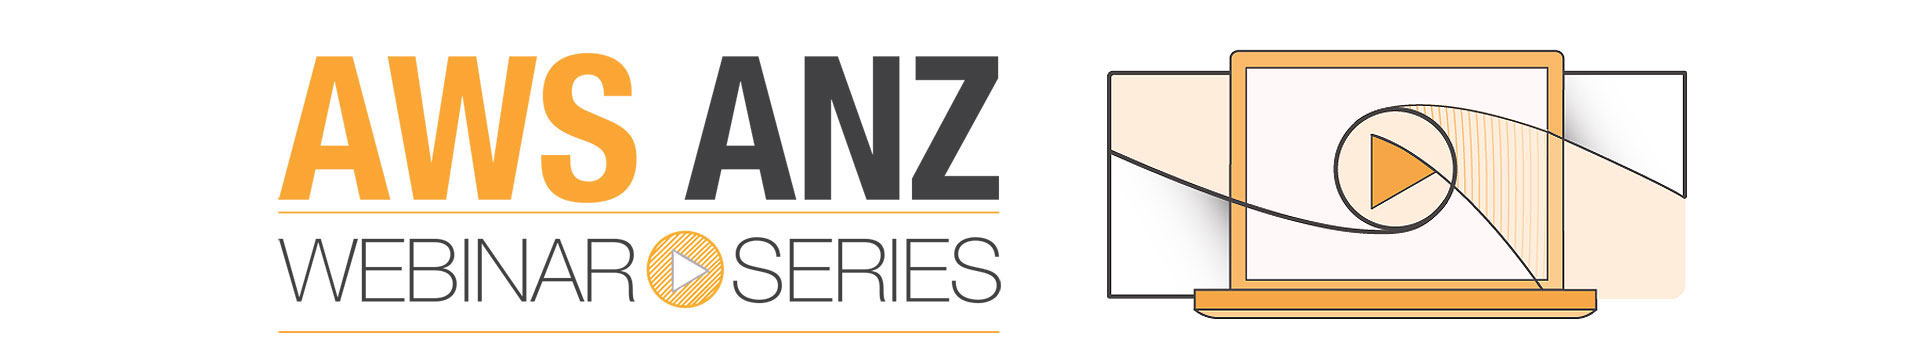 anz-webinar-series-slider